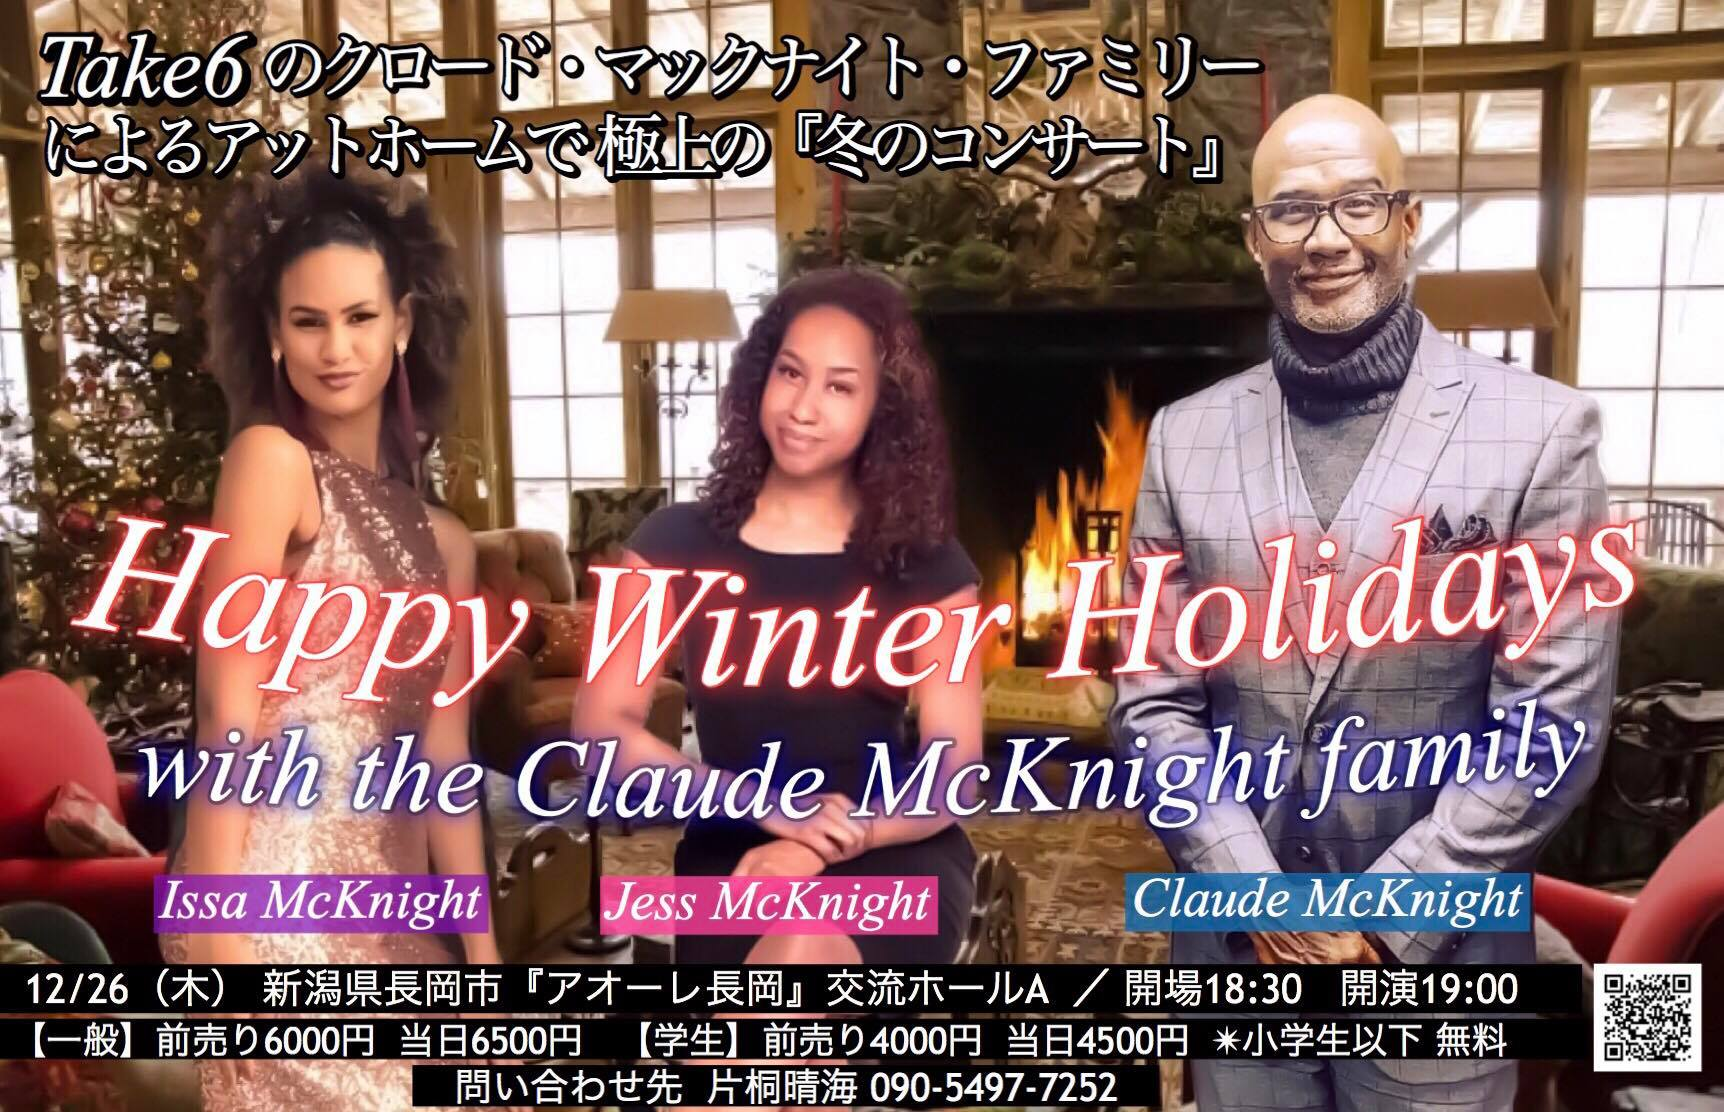 Happy Winter Holidays  with the Claude McKnight family